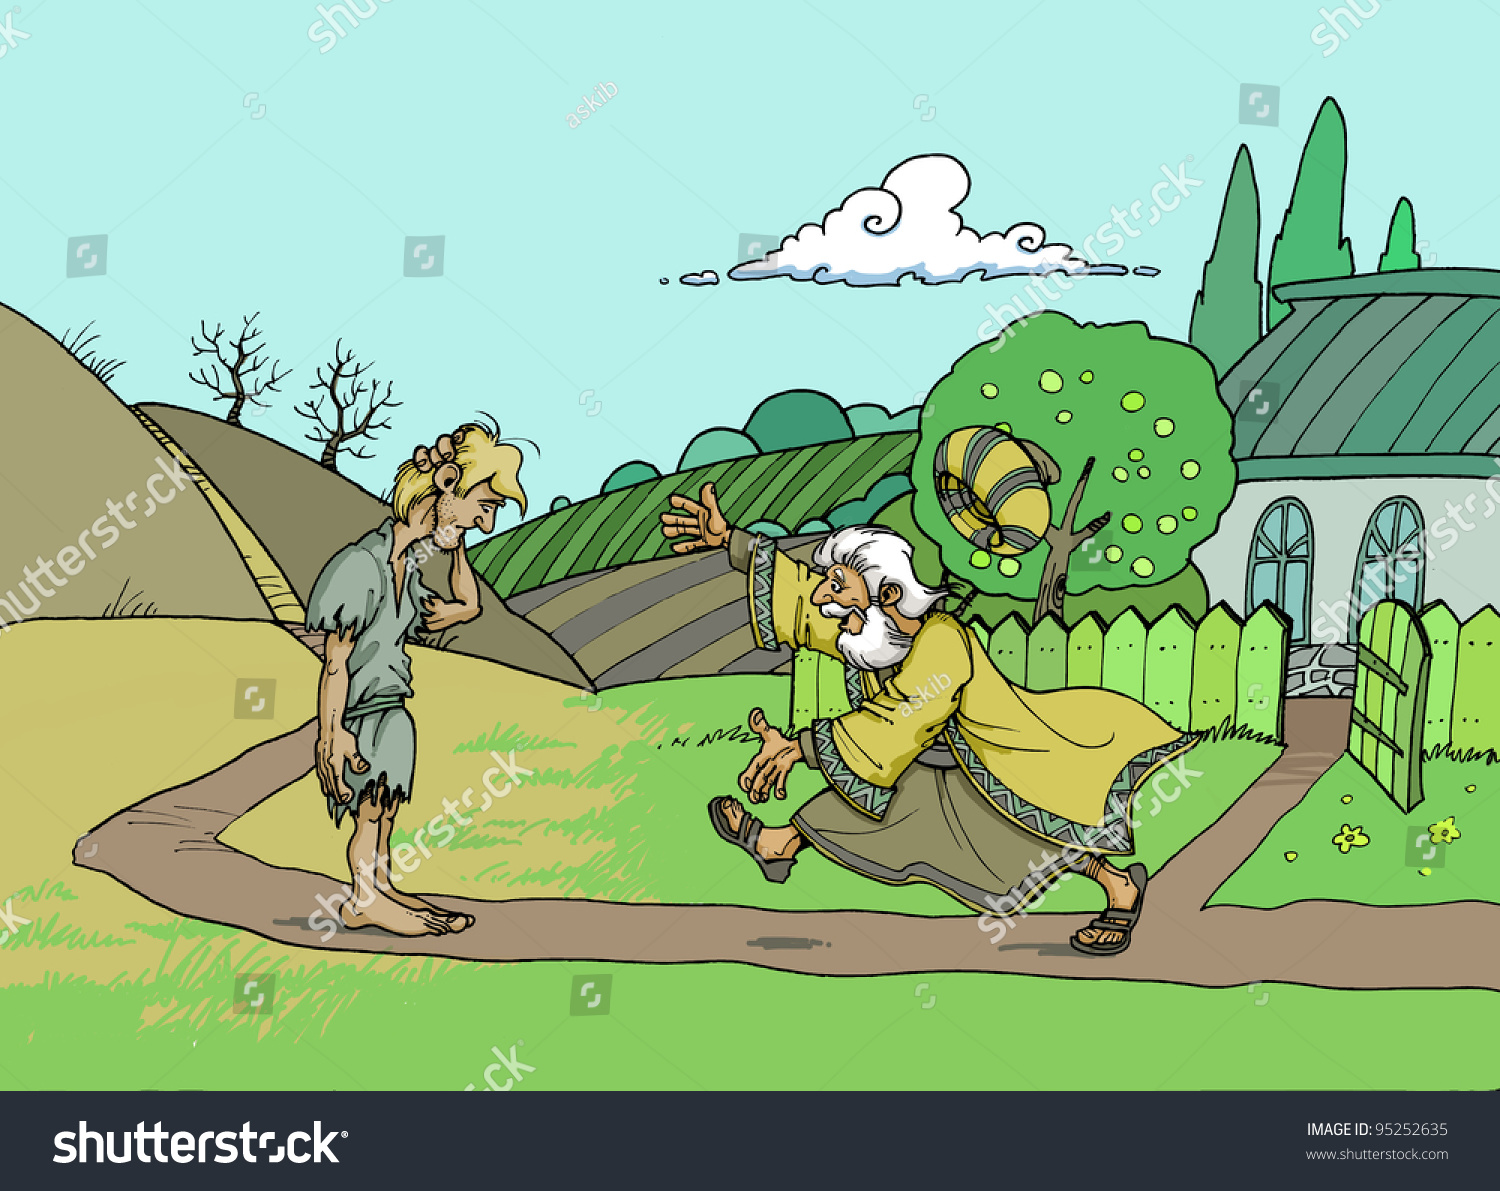 parable about prodigal son loving father stock illustration